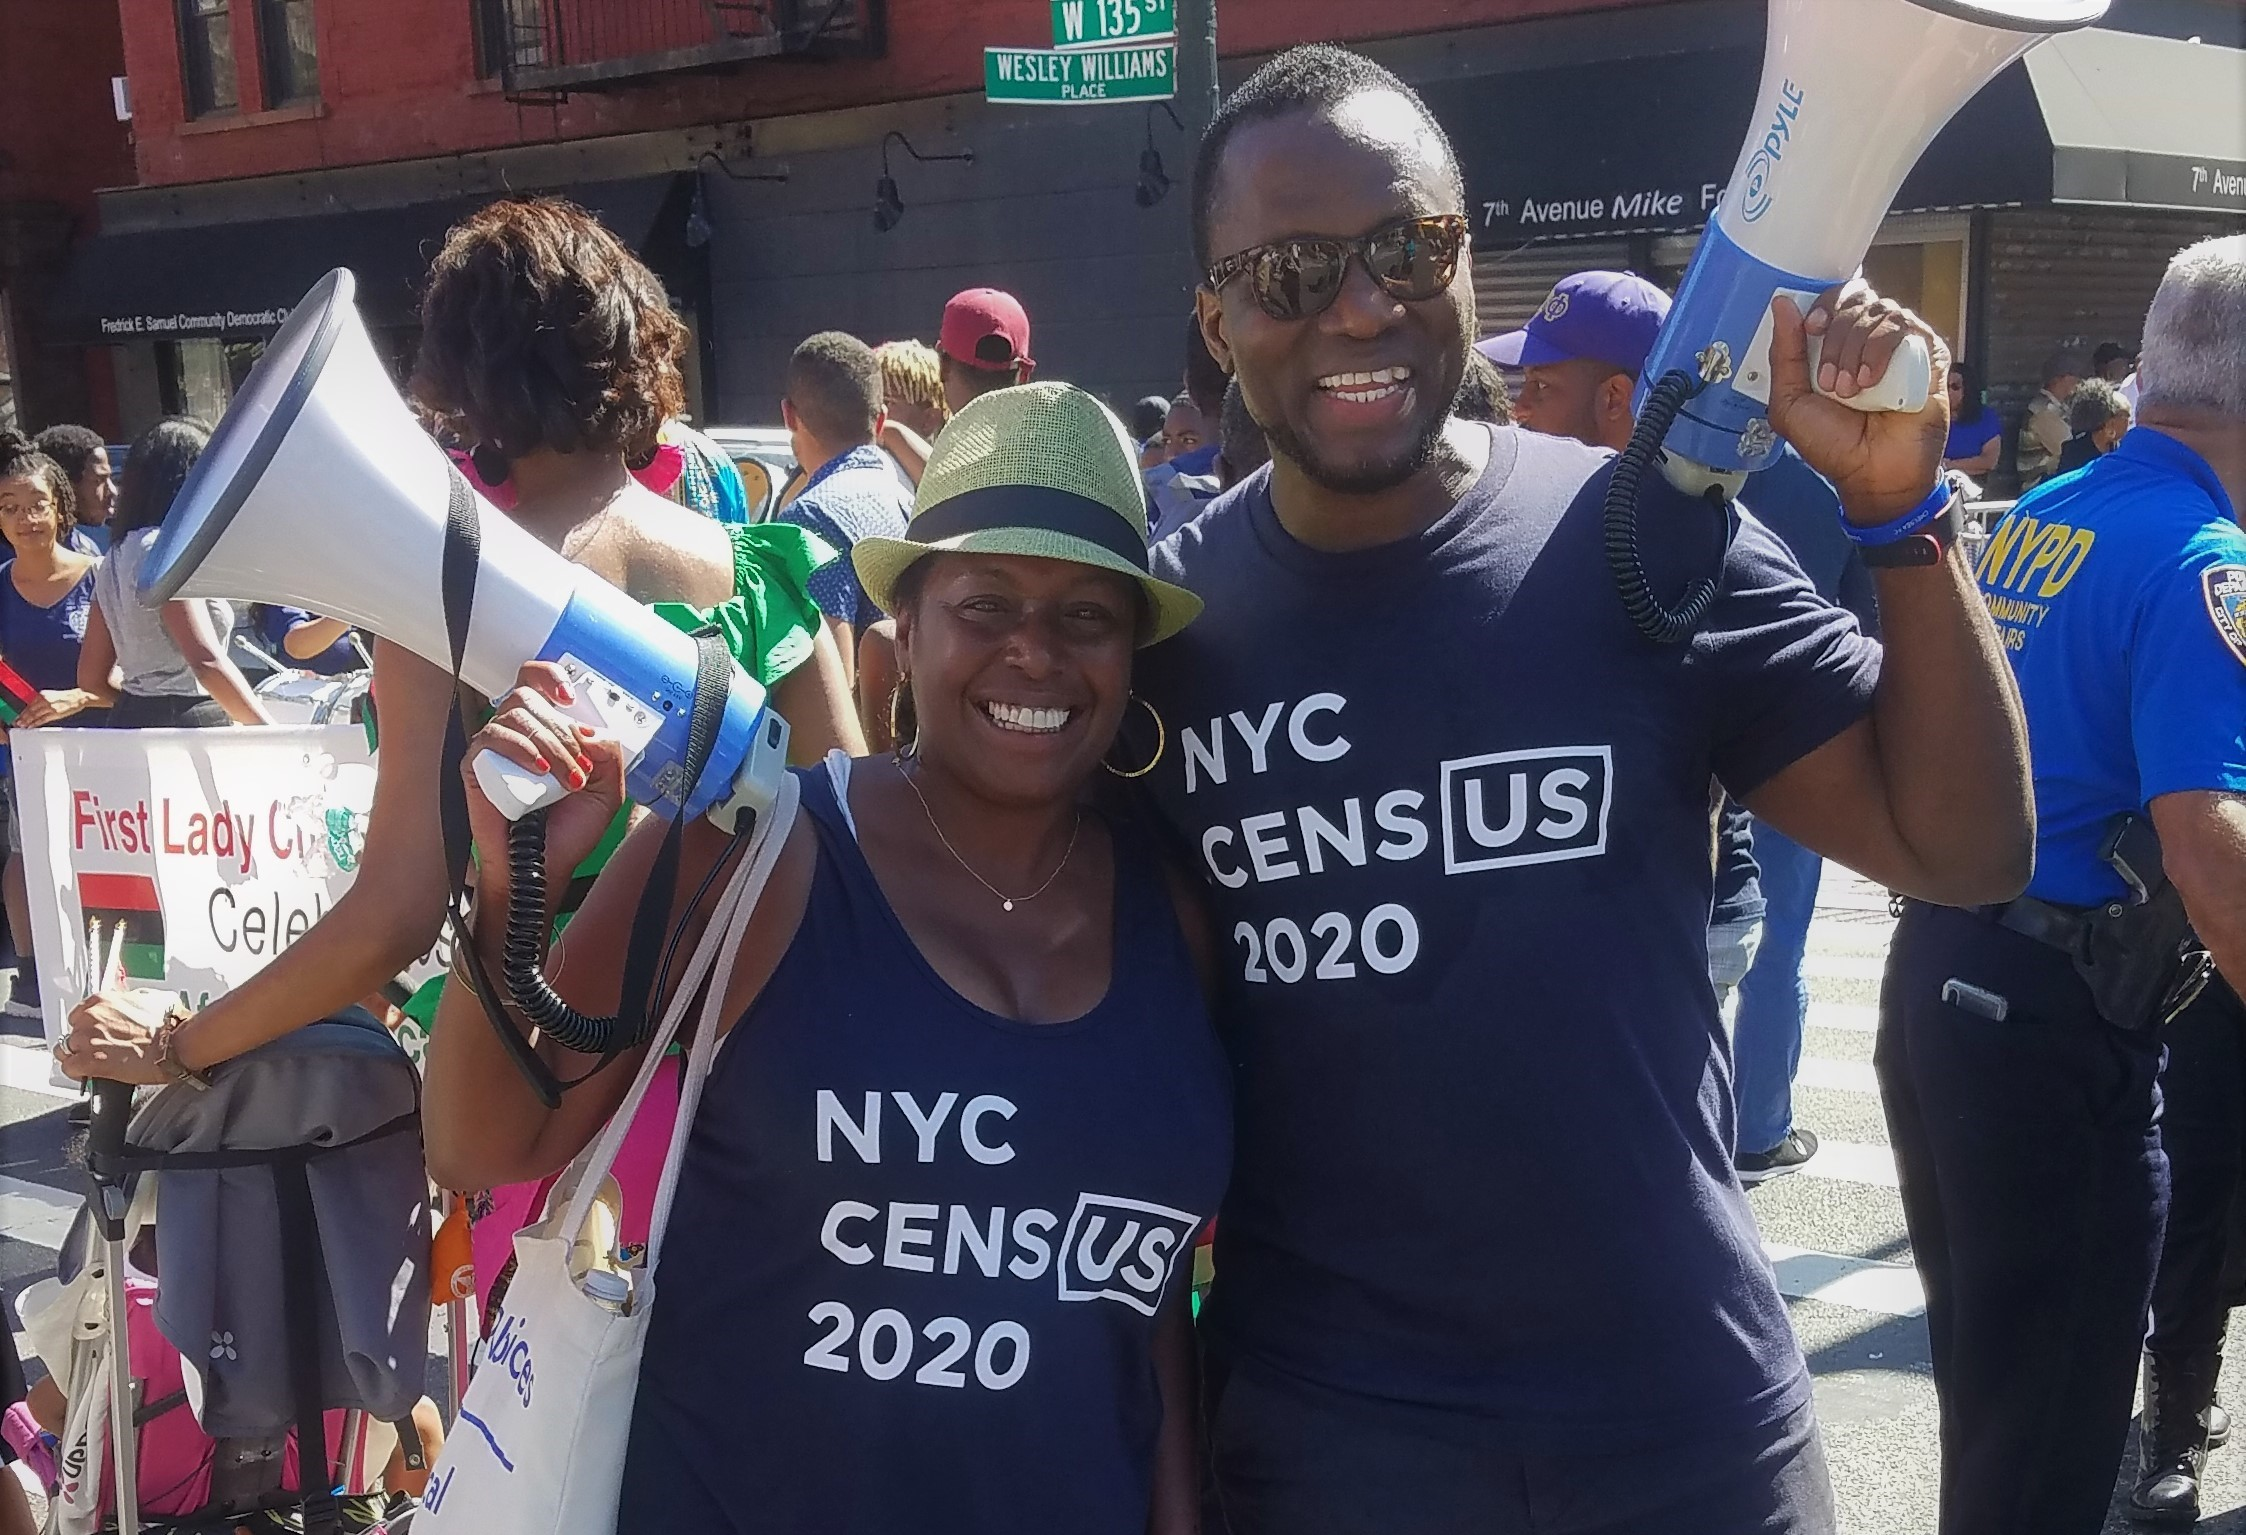 Two smiling volunteers holding megaphones, wearing t-shirts that says NYC Census 2020.